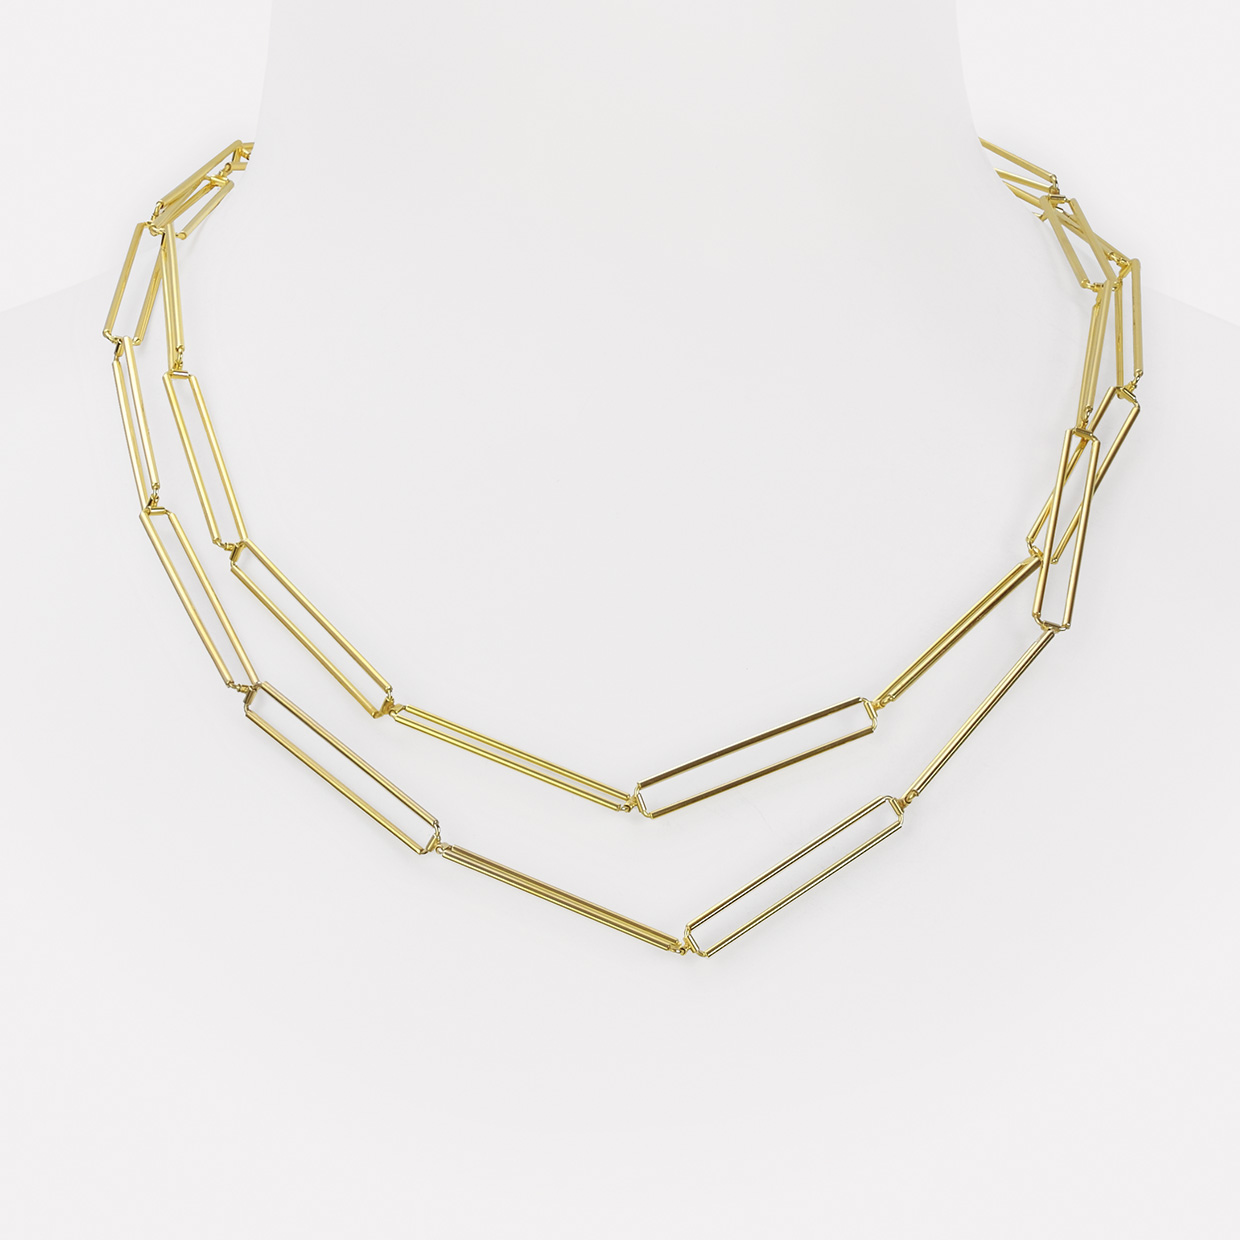 necklace  2018  gold  750  1160x6,5mm